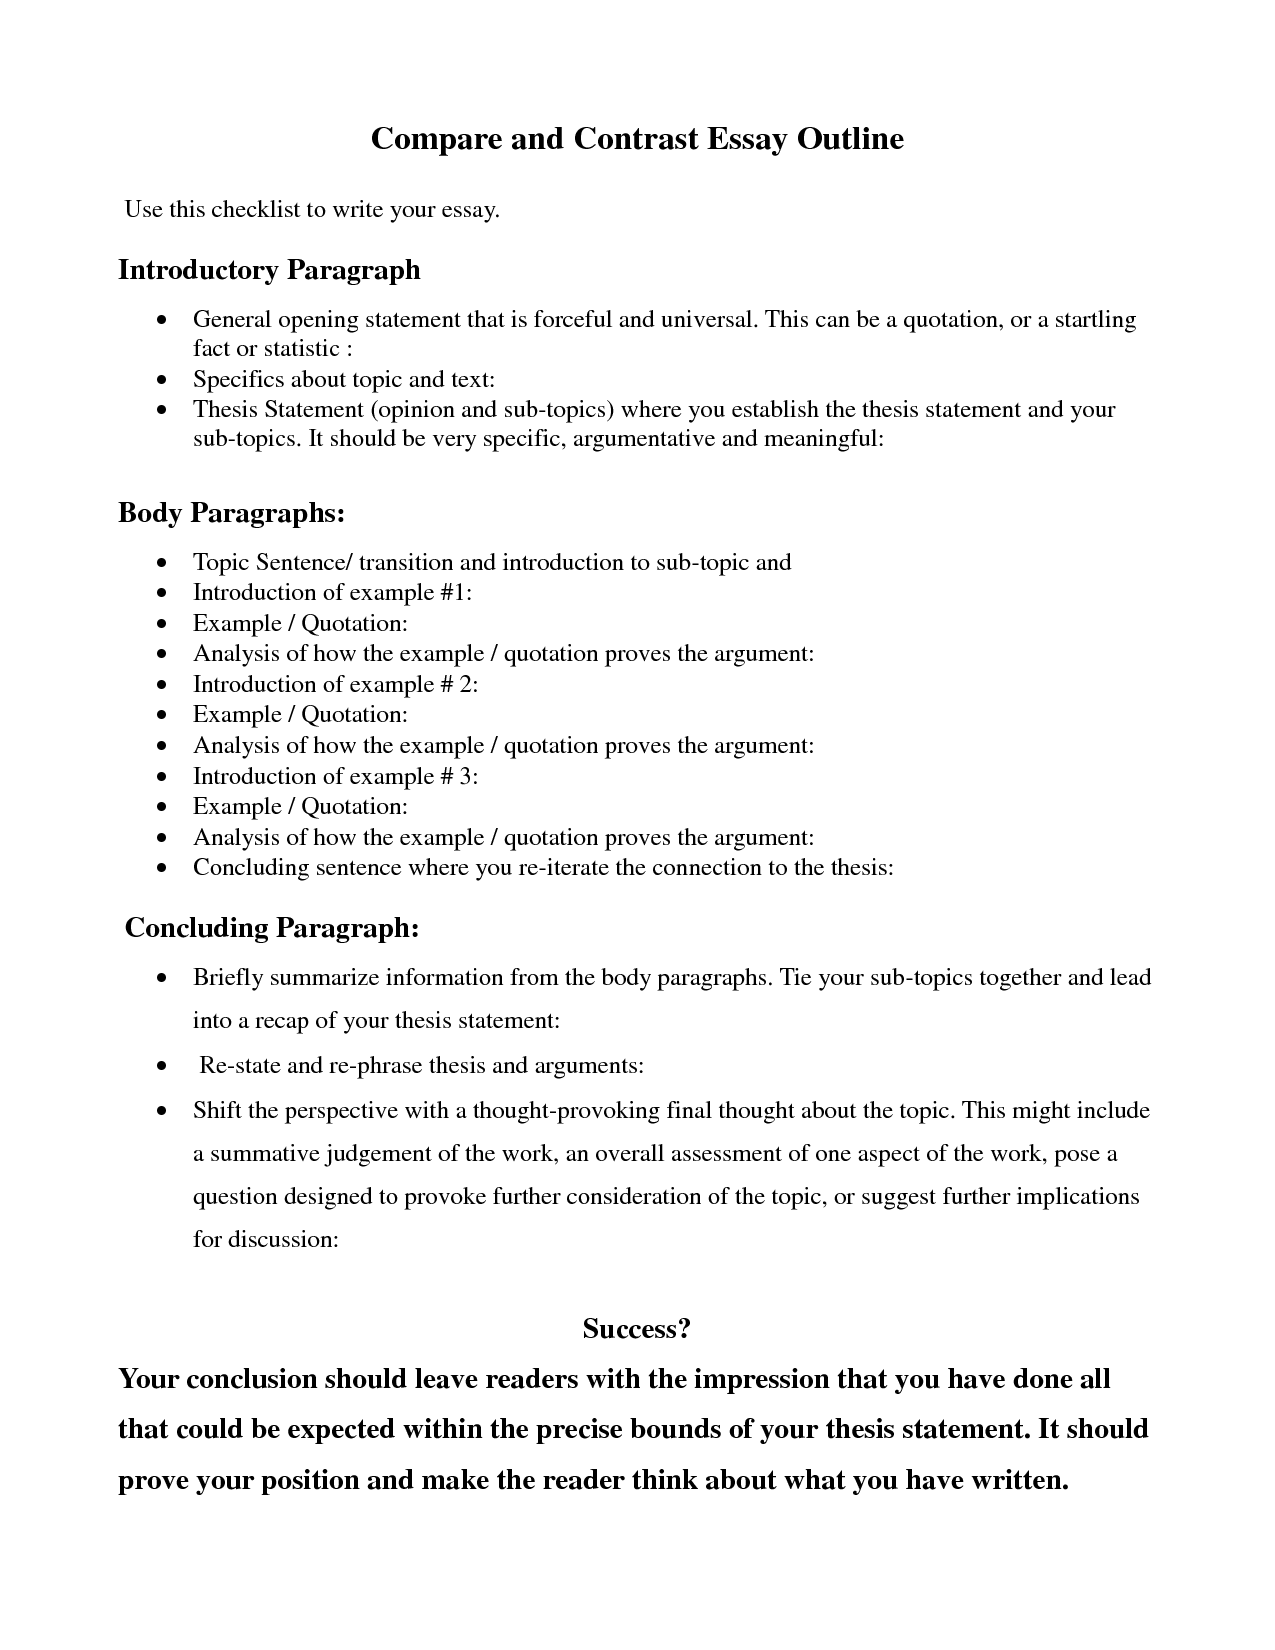 Causes Of The English Civil War Essay Comparecontrast Essay Outline  Google Search Essay On Healthy Foods also Synthesis Essay Comparecontrast Essay Outline  Google Search  Education  The Importance Of English Essay